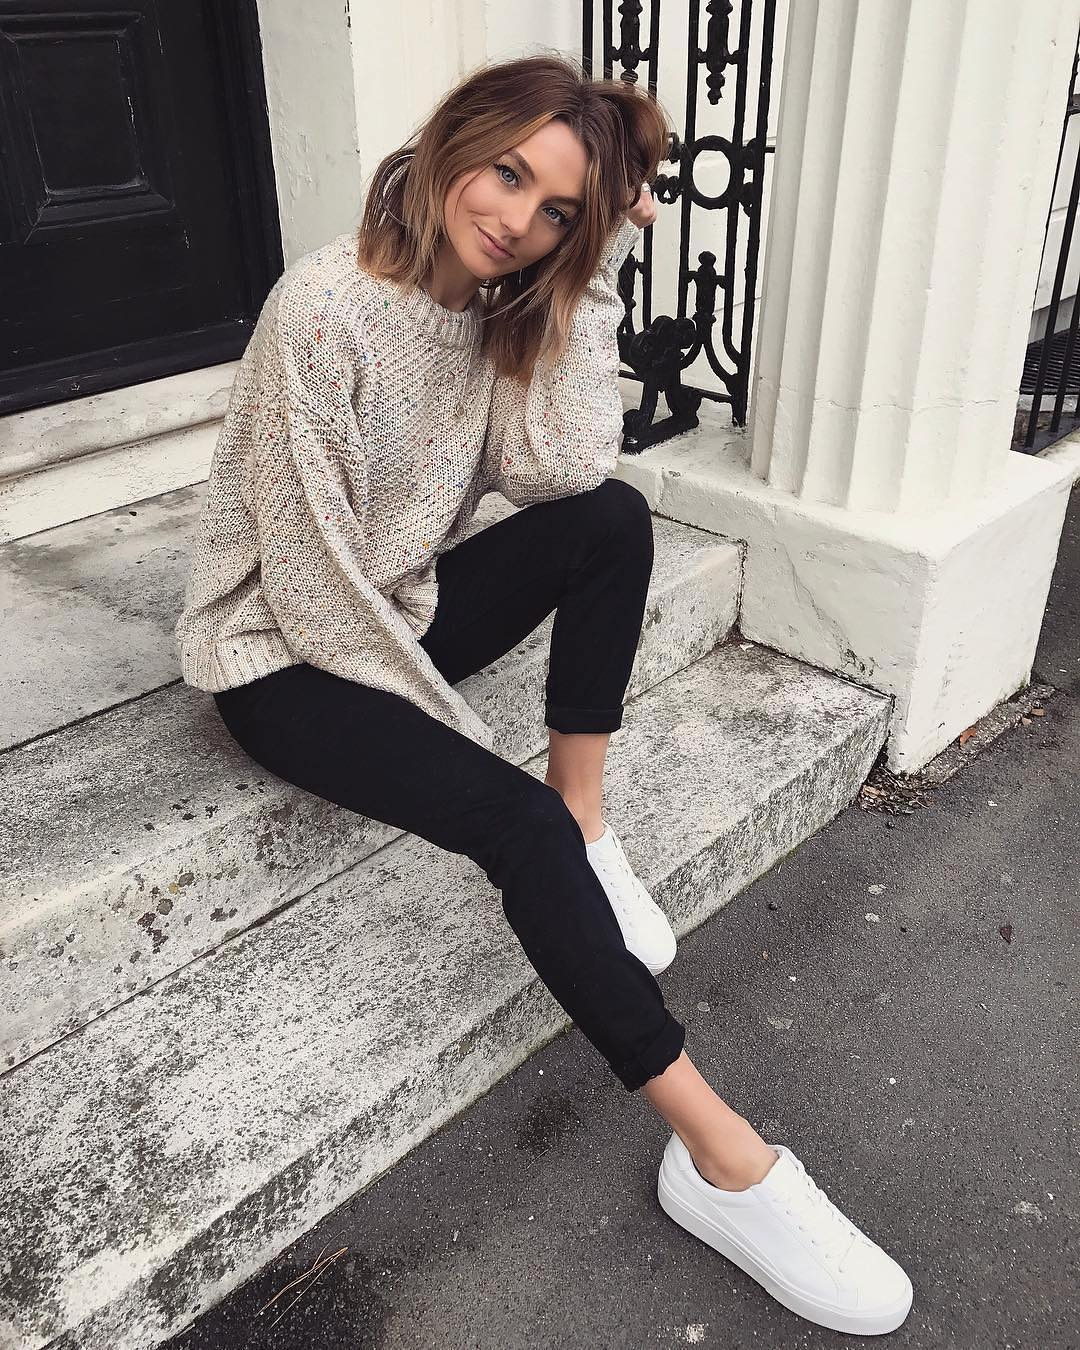 Relaxed Sweater, Slim Pants In Black And White Sneakers: Essentials For Autumn 2019